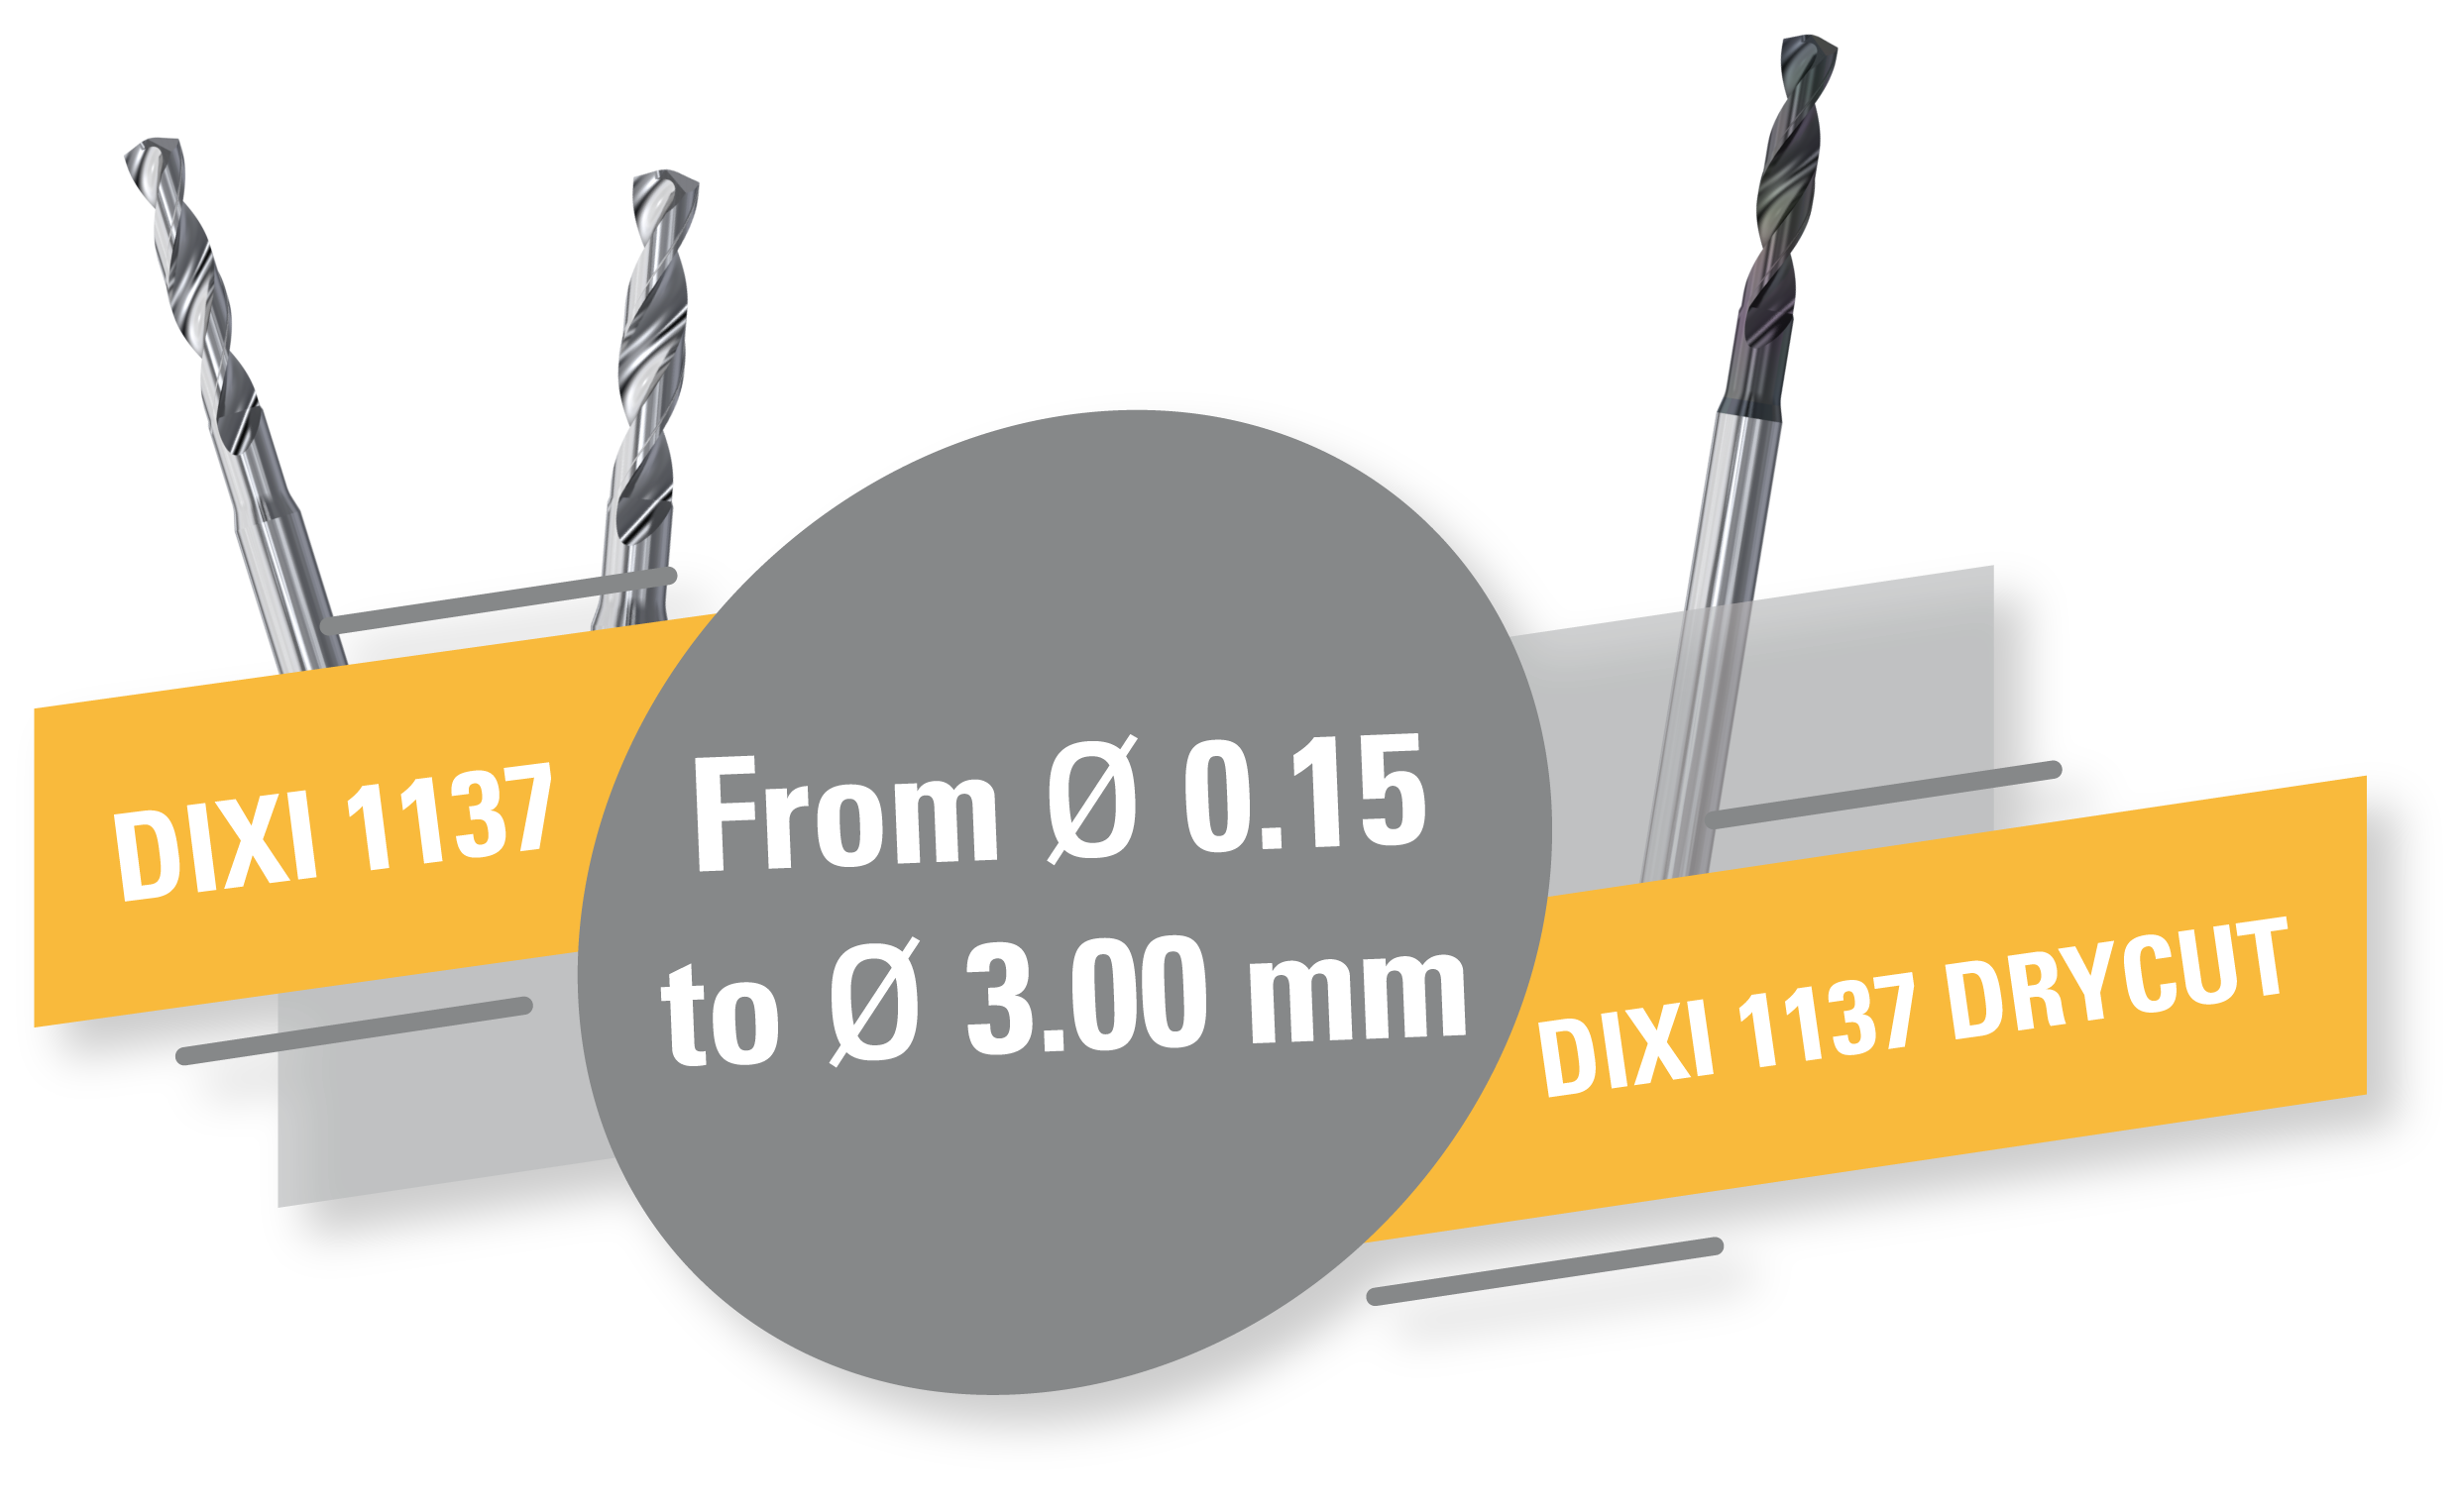 New helical drills DIXI 1137 !